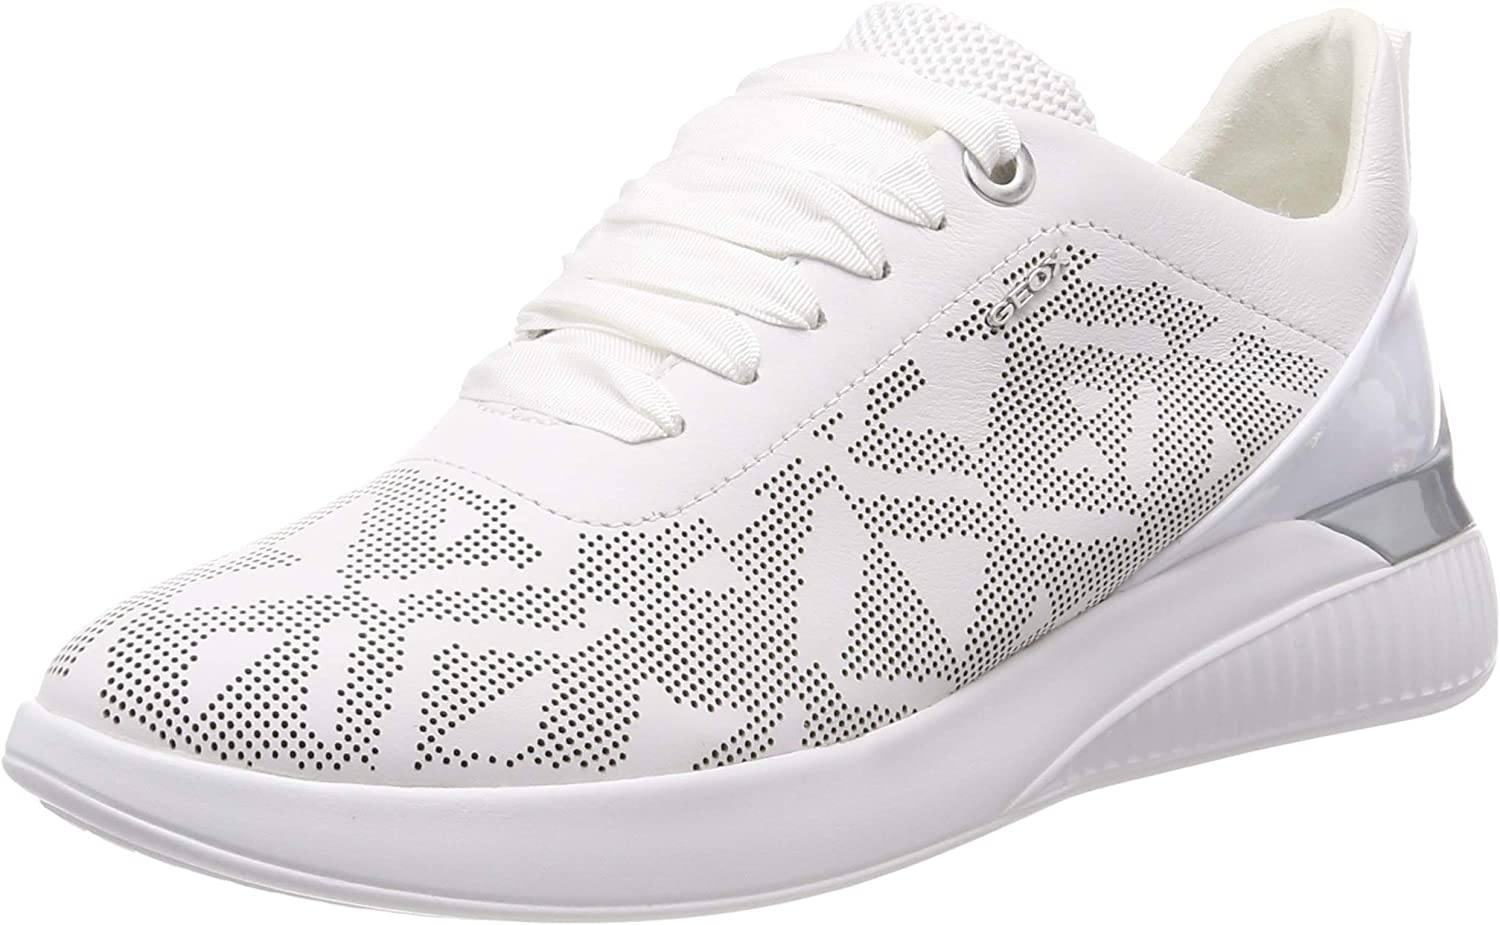 fecha Periodo perioperatorio Asombro  Geox Women's Theragon Leather Sneaker Low-Top: Amazon.ca: Shoes & Handbags